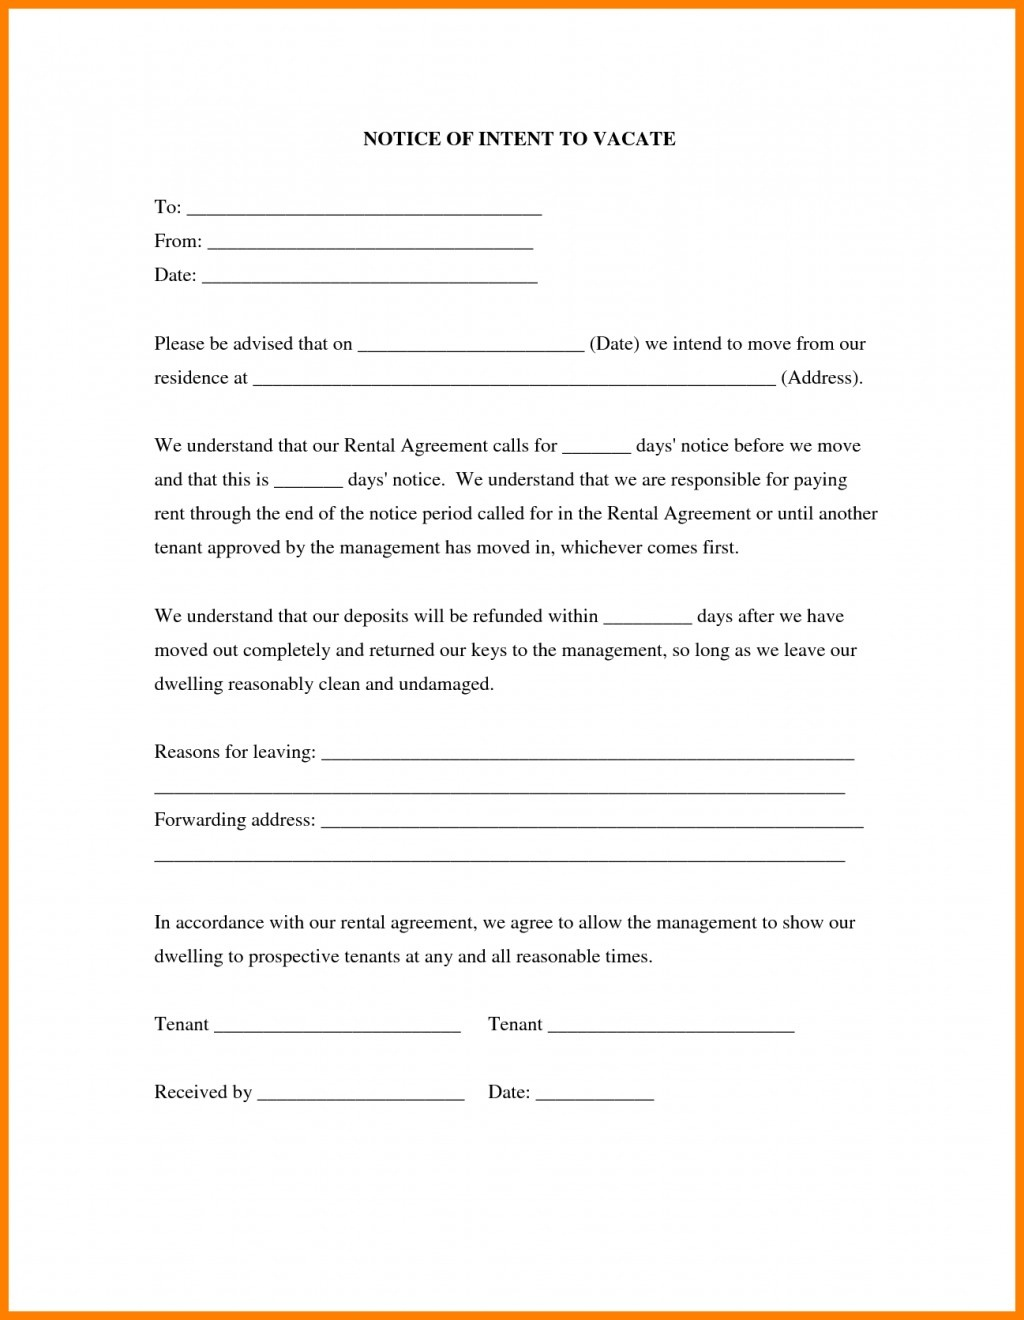 008 Free Printable Eviction Notice Forms Form Day To Vacate Sample - Free Printable Eviction Notice